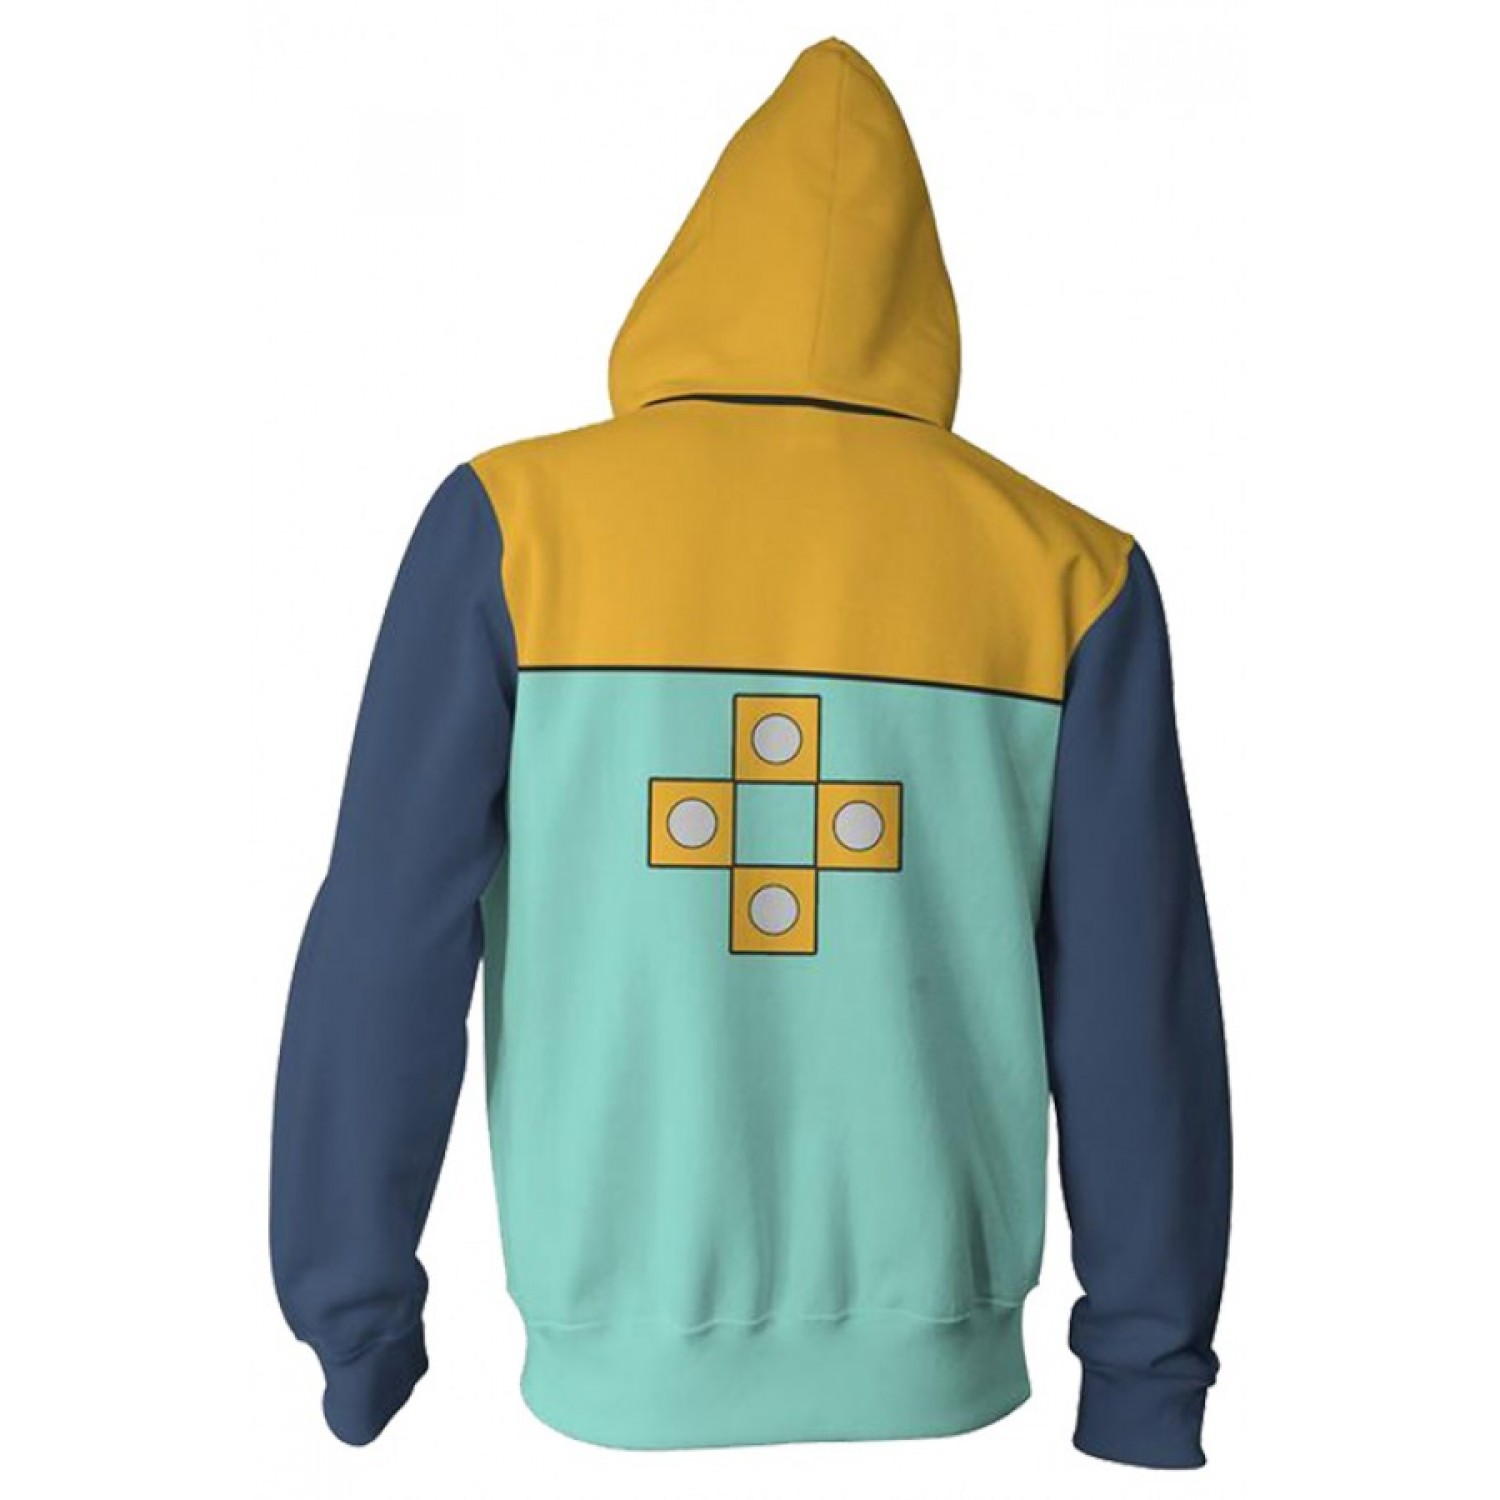 The Seven Deadly Sins Hoodies - King Zip Up Hoodie Jacket 3D Print Sweatshirt